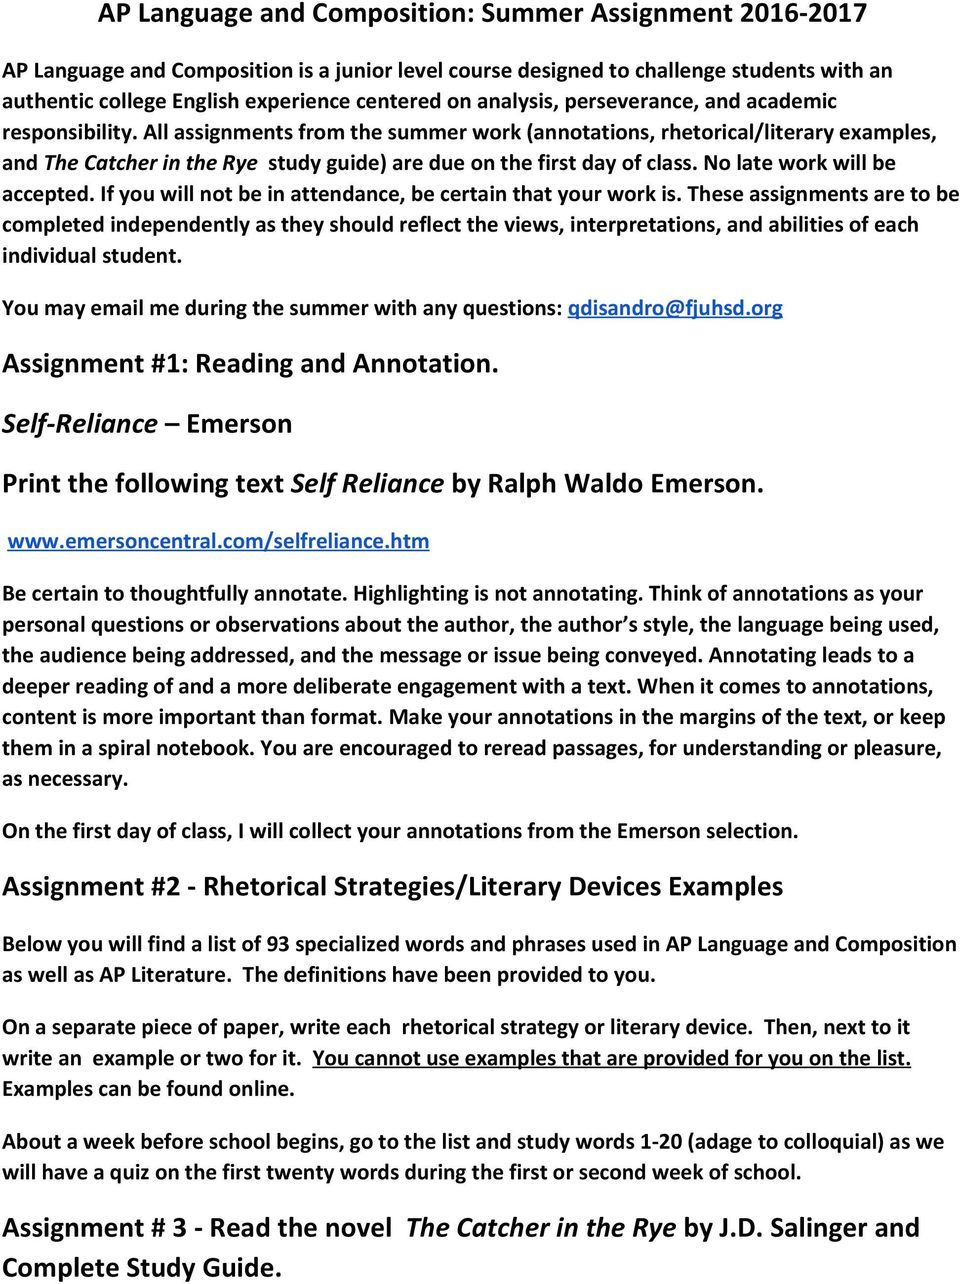 AP Language and Composition: Summer Assignment - PDF